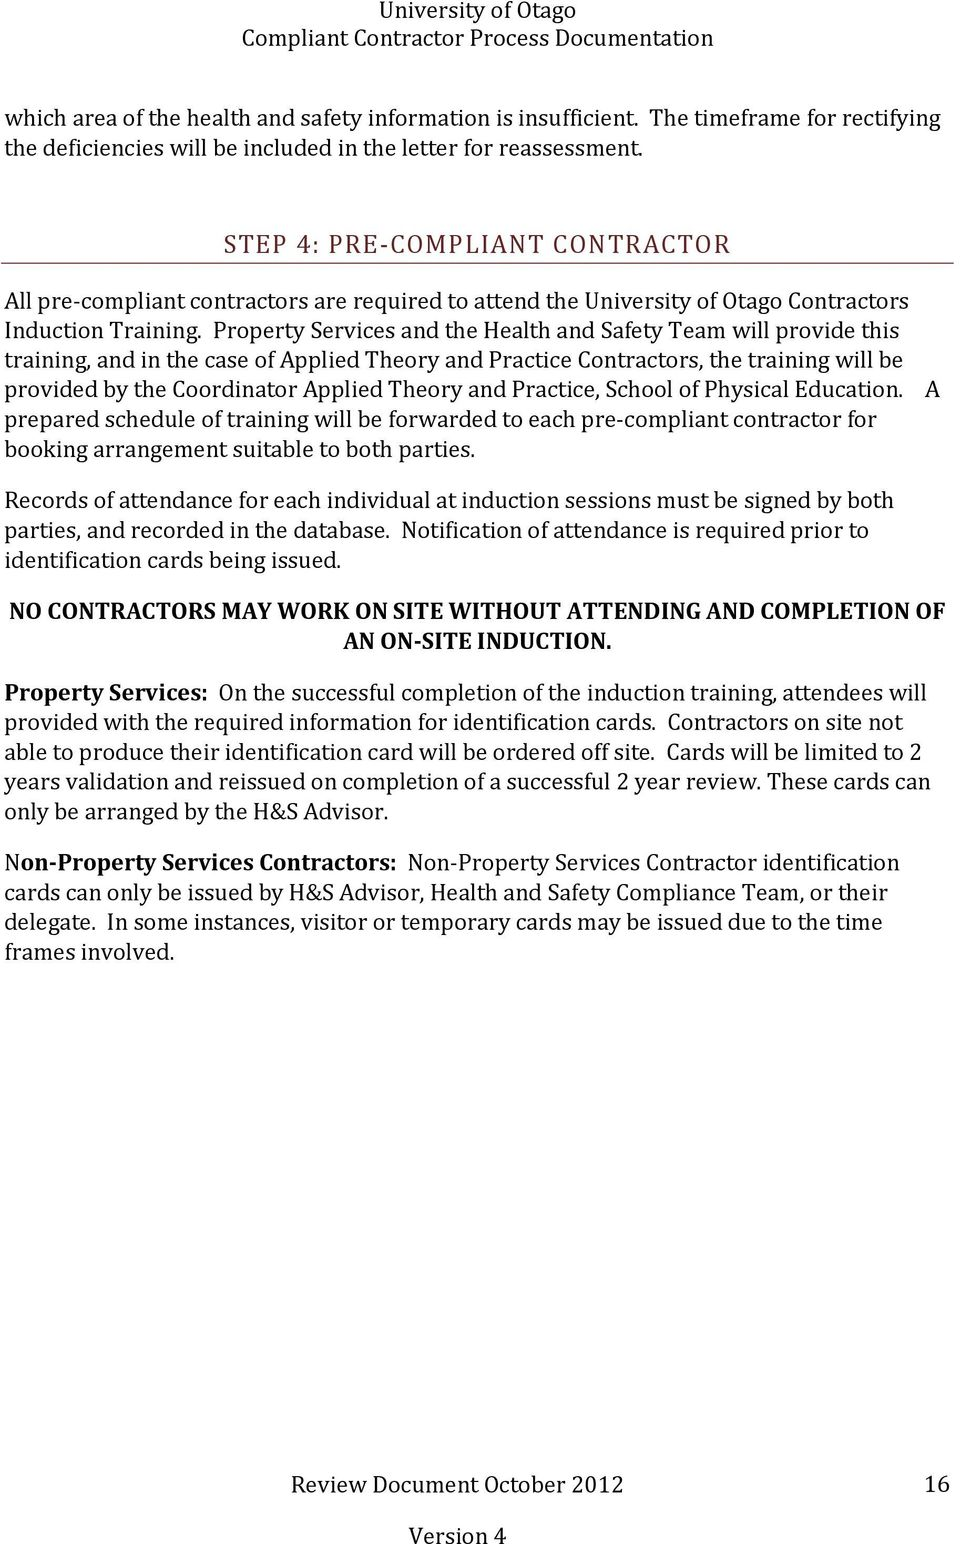 Property Services and the Health and Safety Team will provide this training, and in the case of Applied Theory and Practice Contractors, the training will be provided by the Coordinator Applied